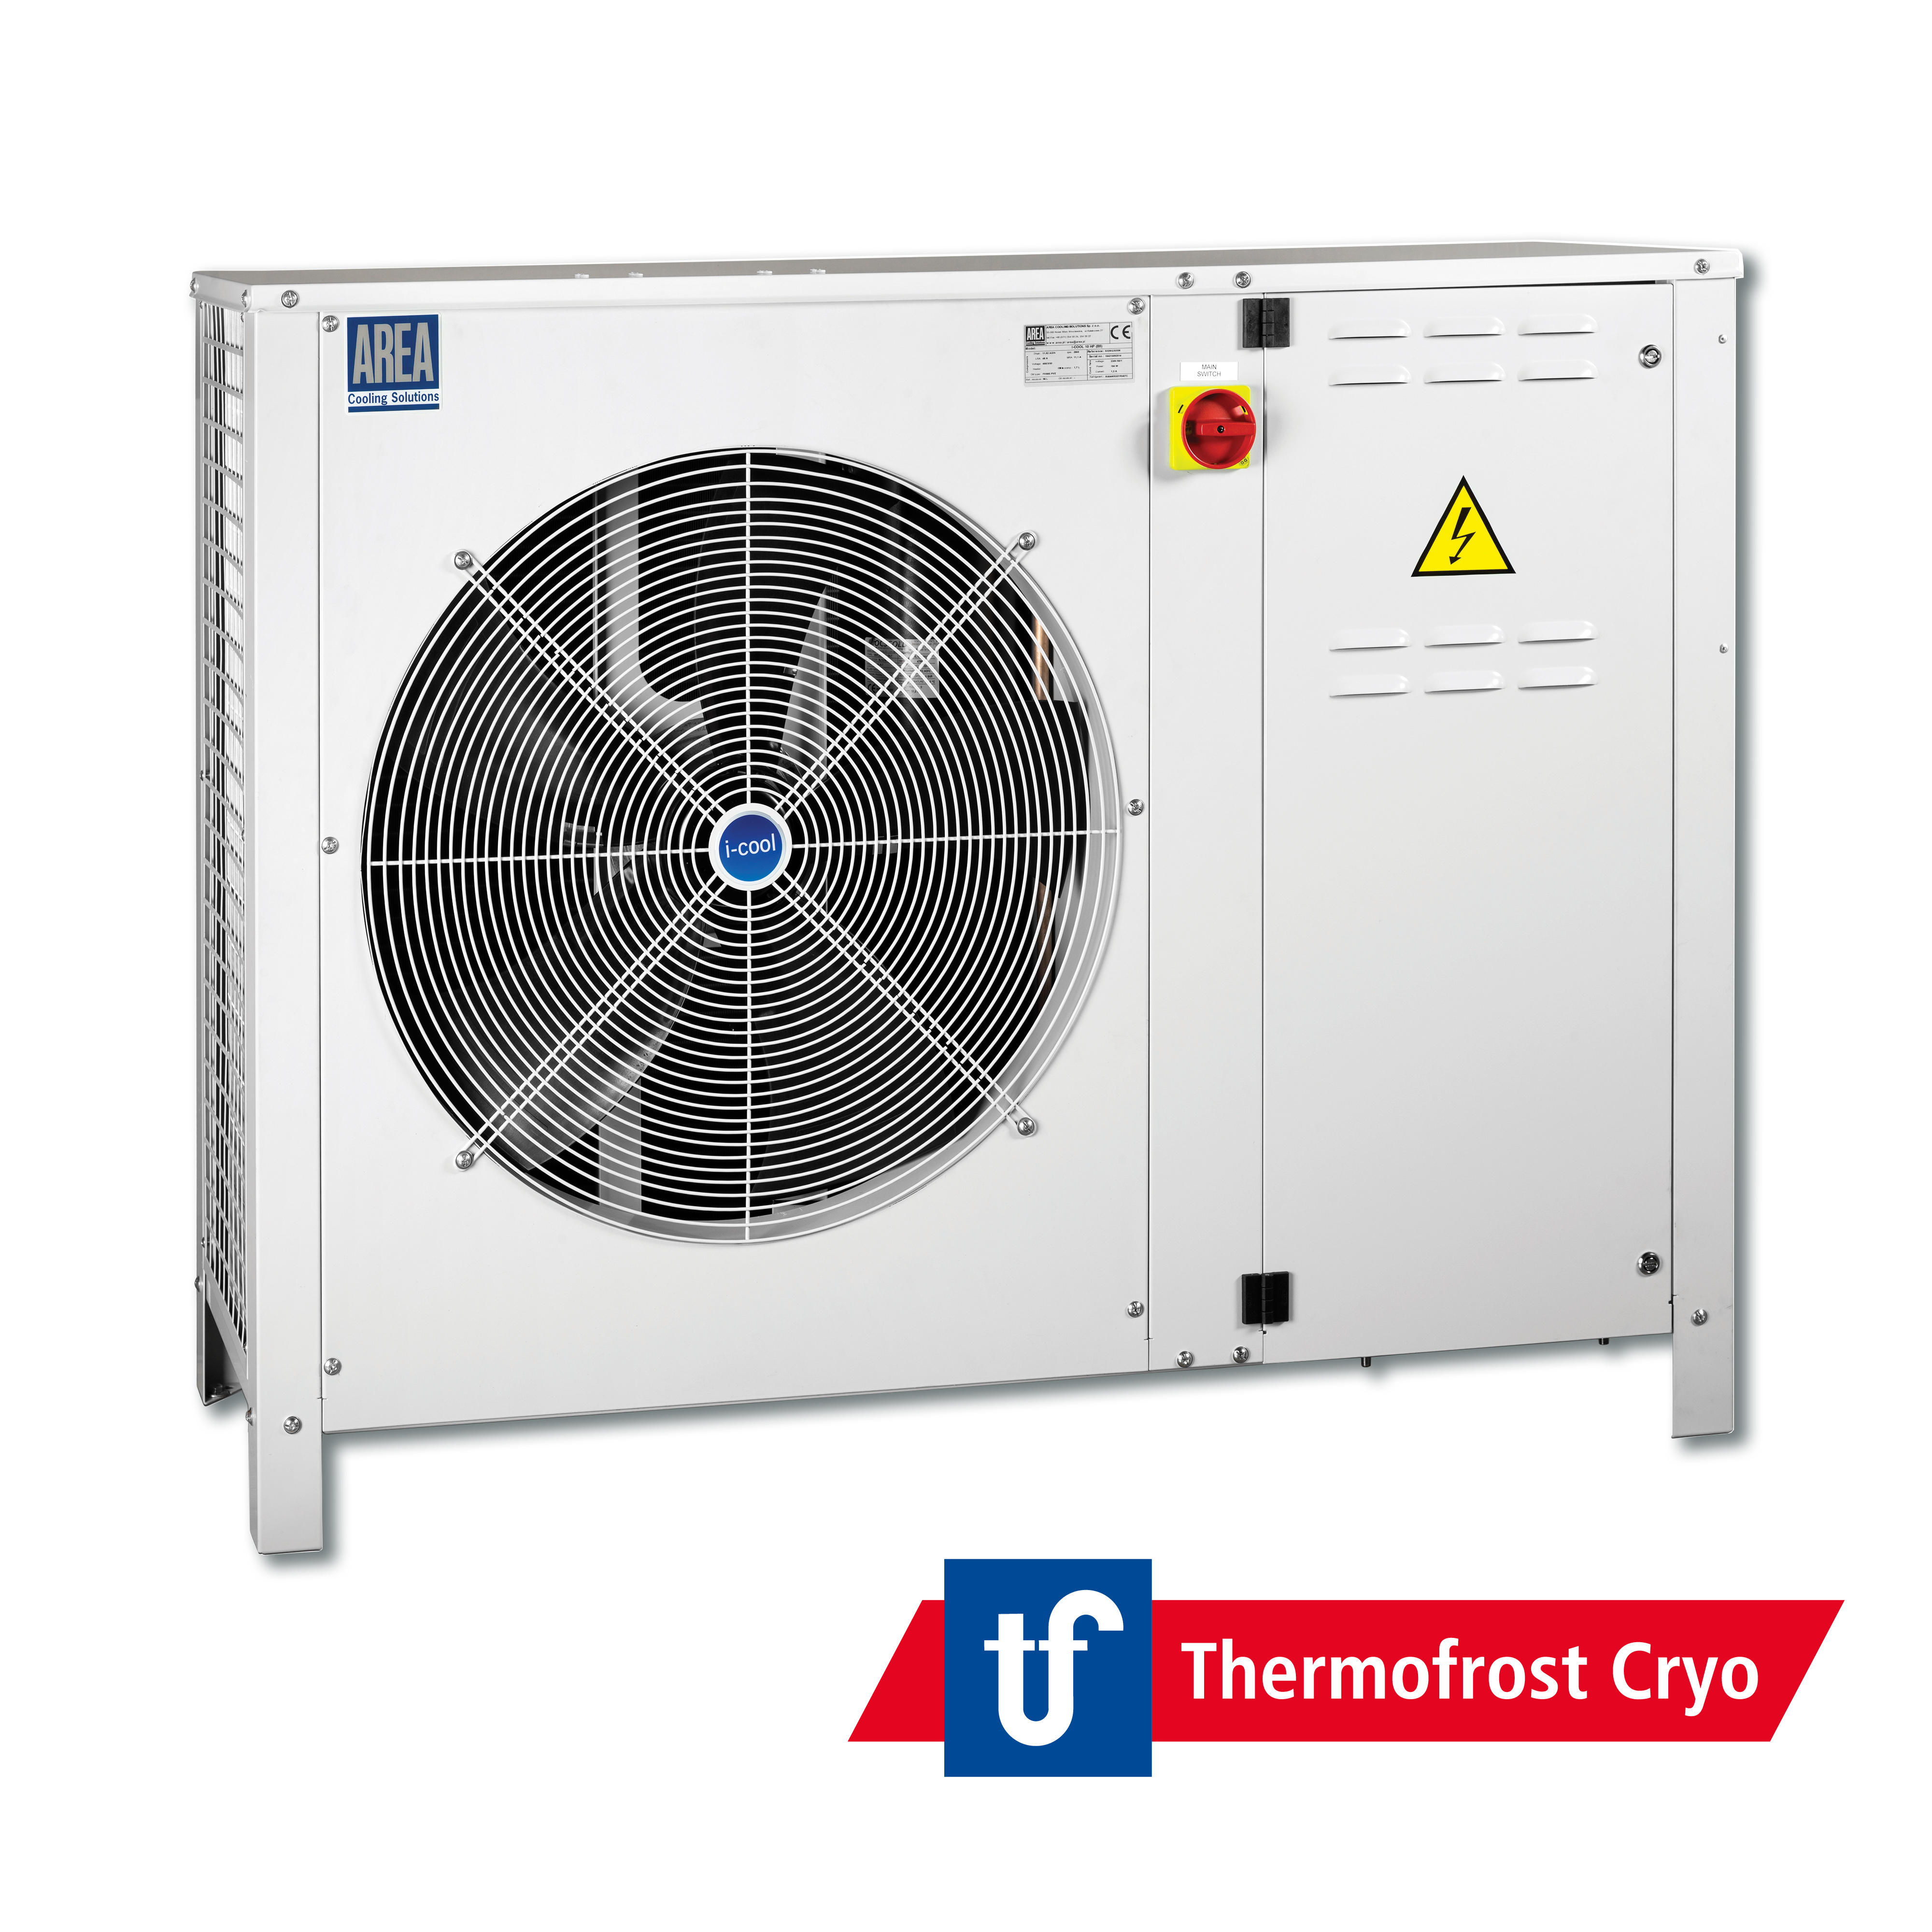 Thermofrost Cryo launches the Icool